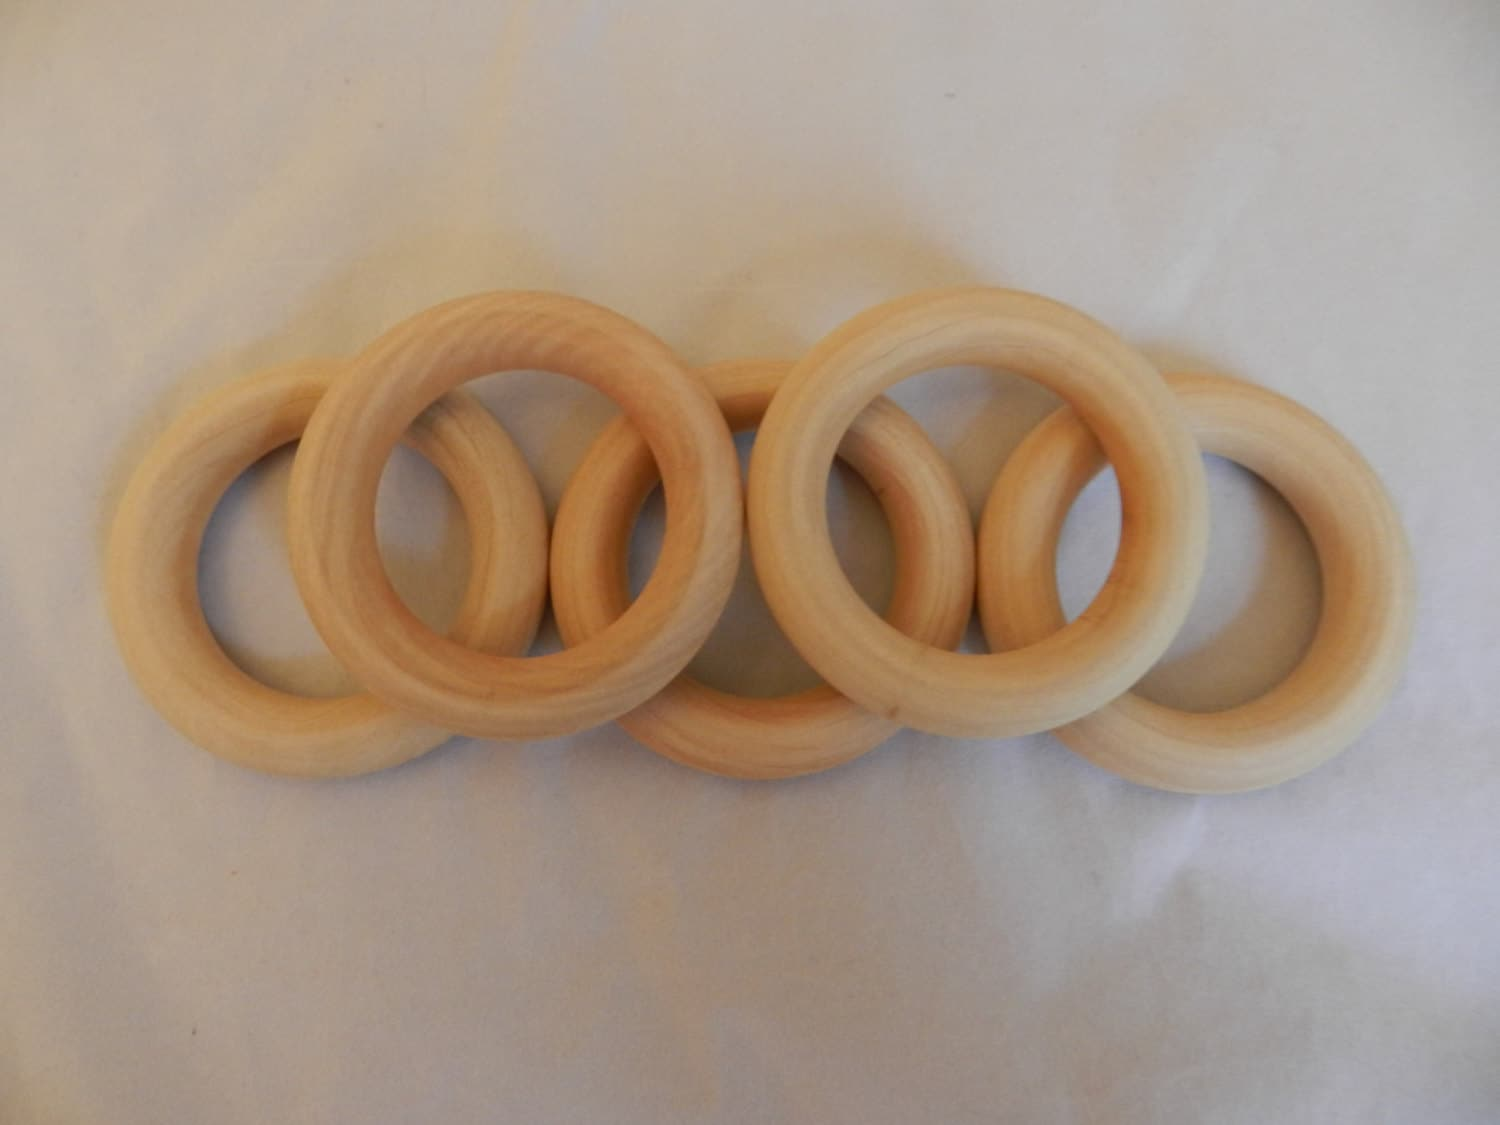 wooden rings craft rings toss rings 3 inch imperfect set of 10 On wood rings for crafts